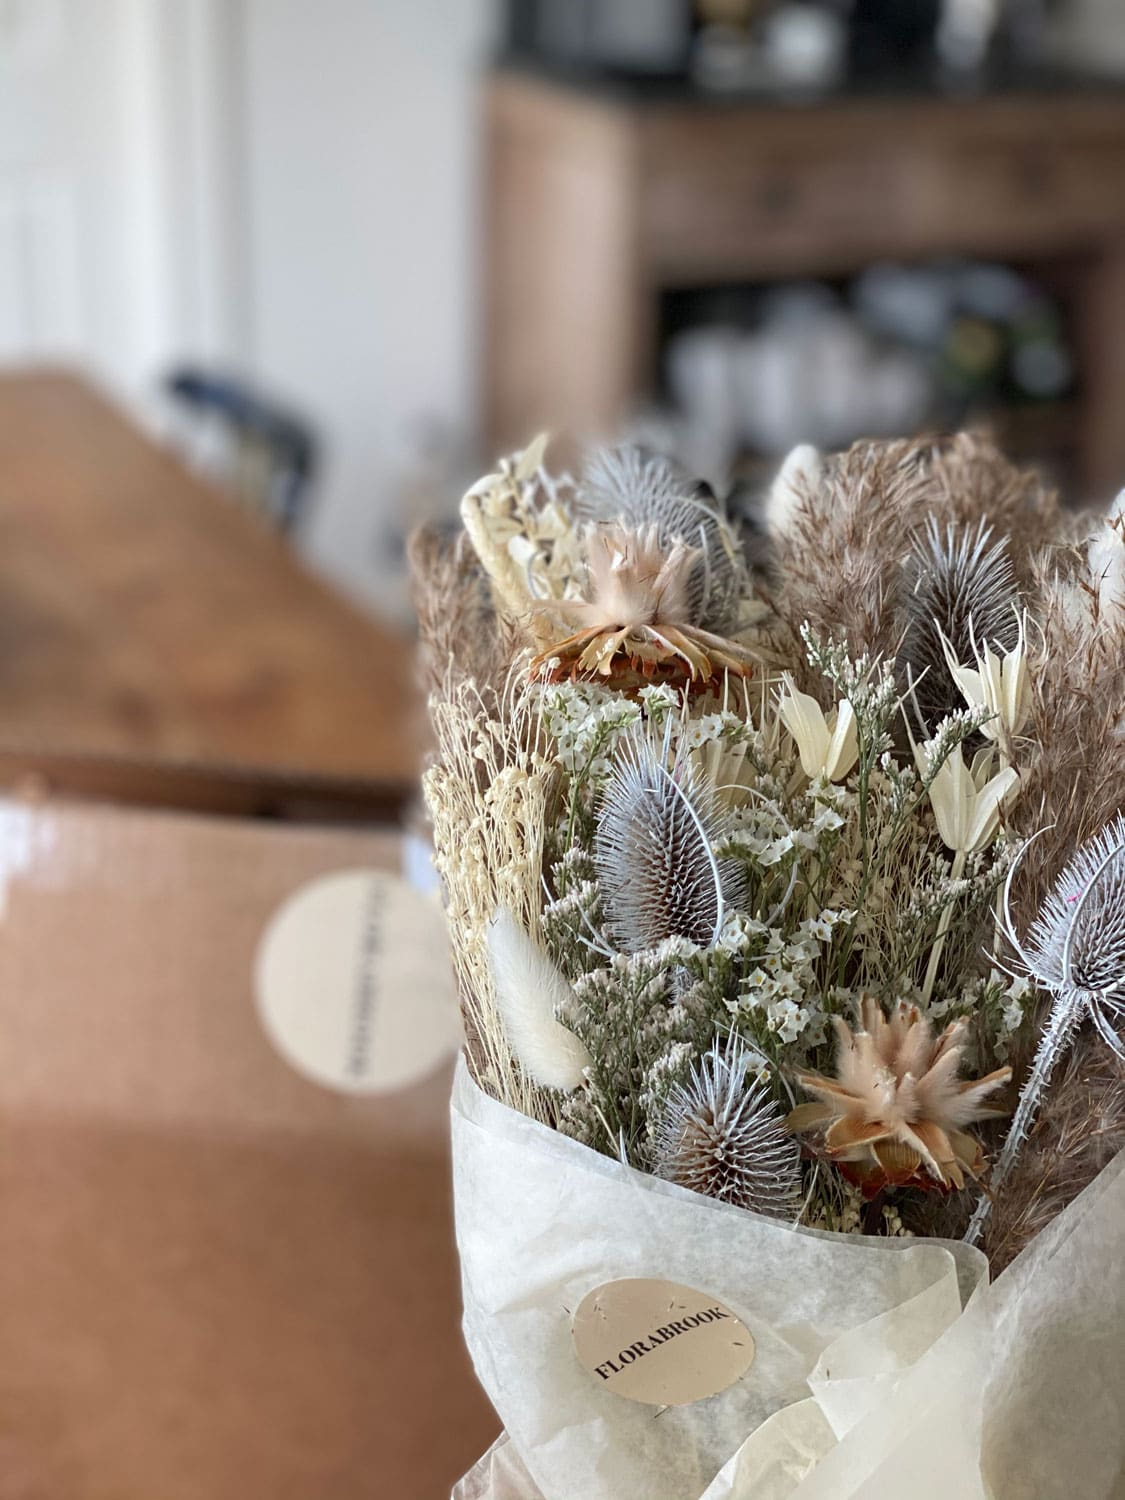 Lifestyle blogger Annie Diamond received a bouquet of dried flowers from Florabrook and they are quite stunning!